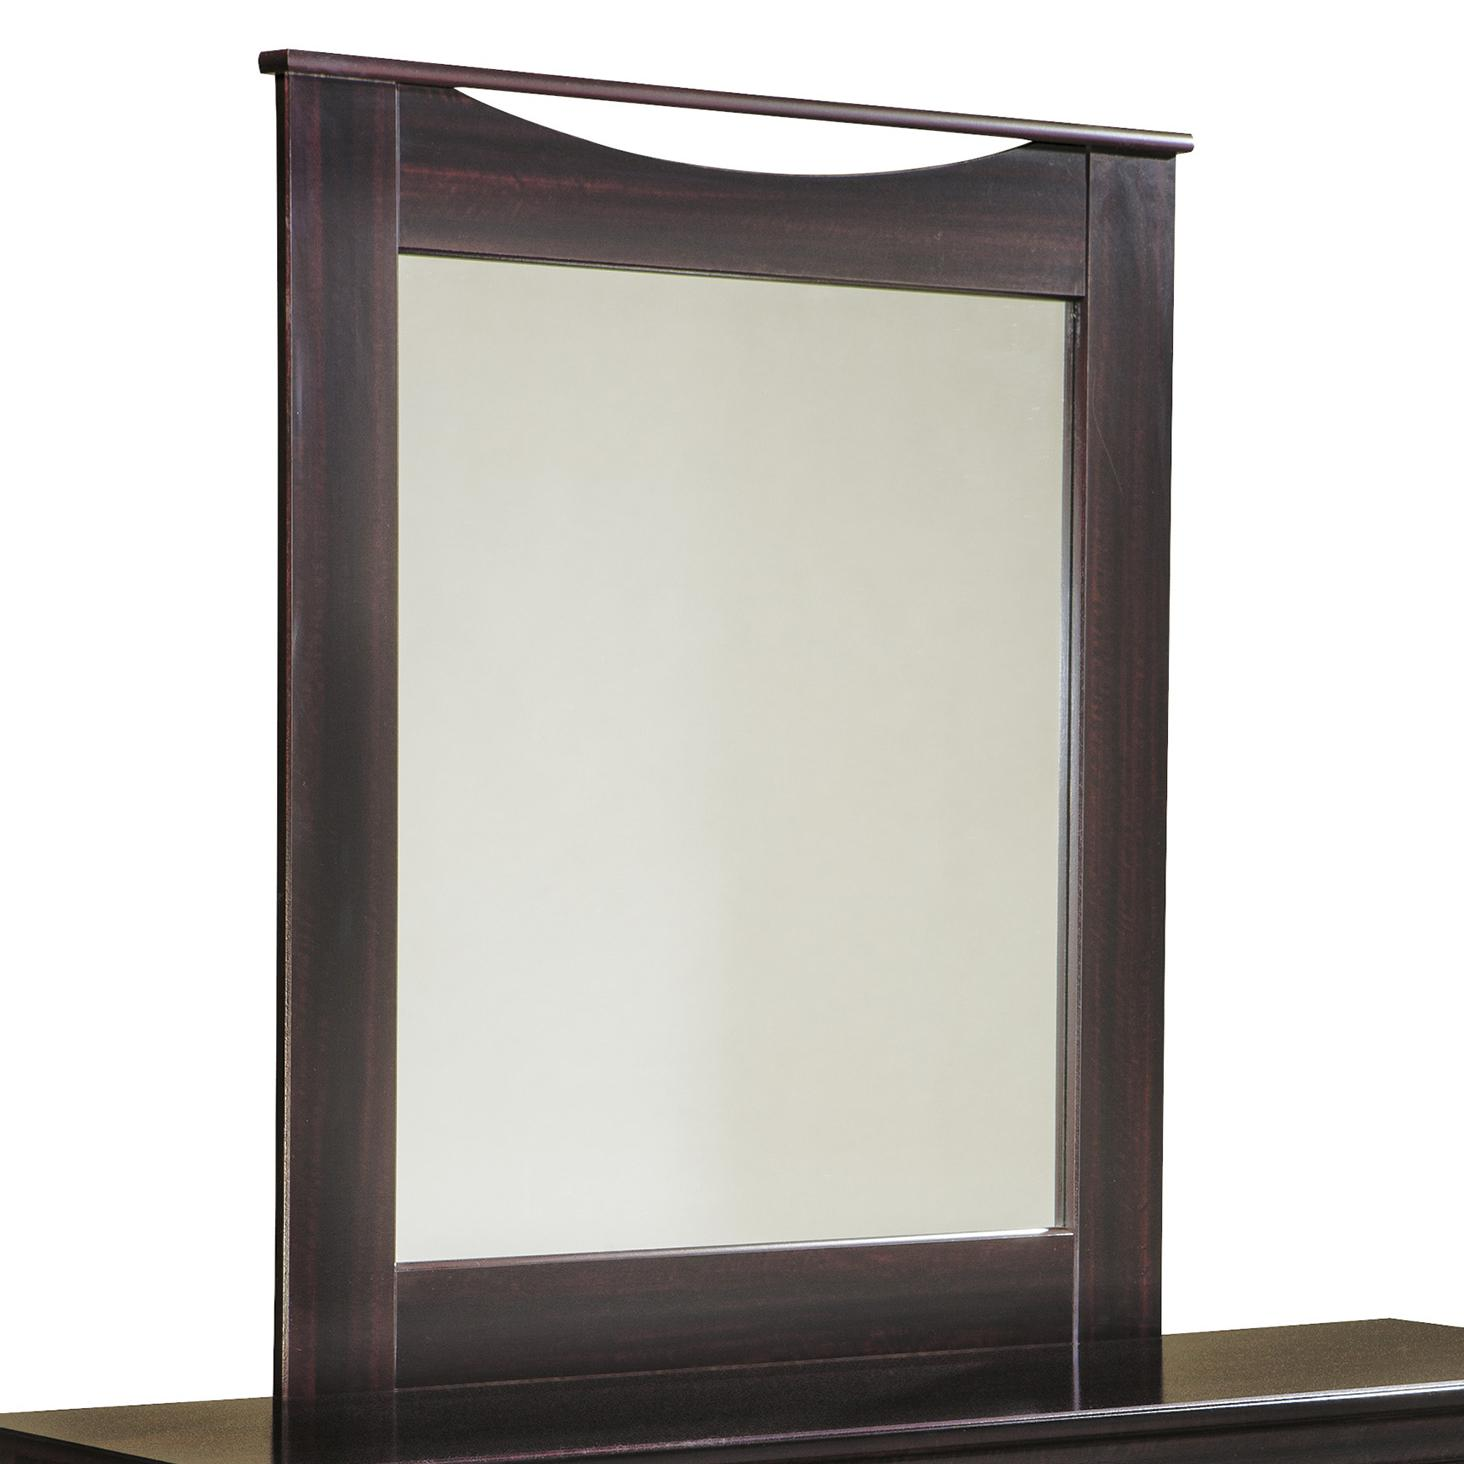 Signature Design by Ashley Zanbury Bedroom Mirror - Item Number: B217-36